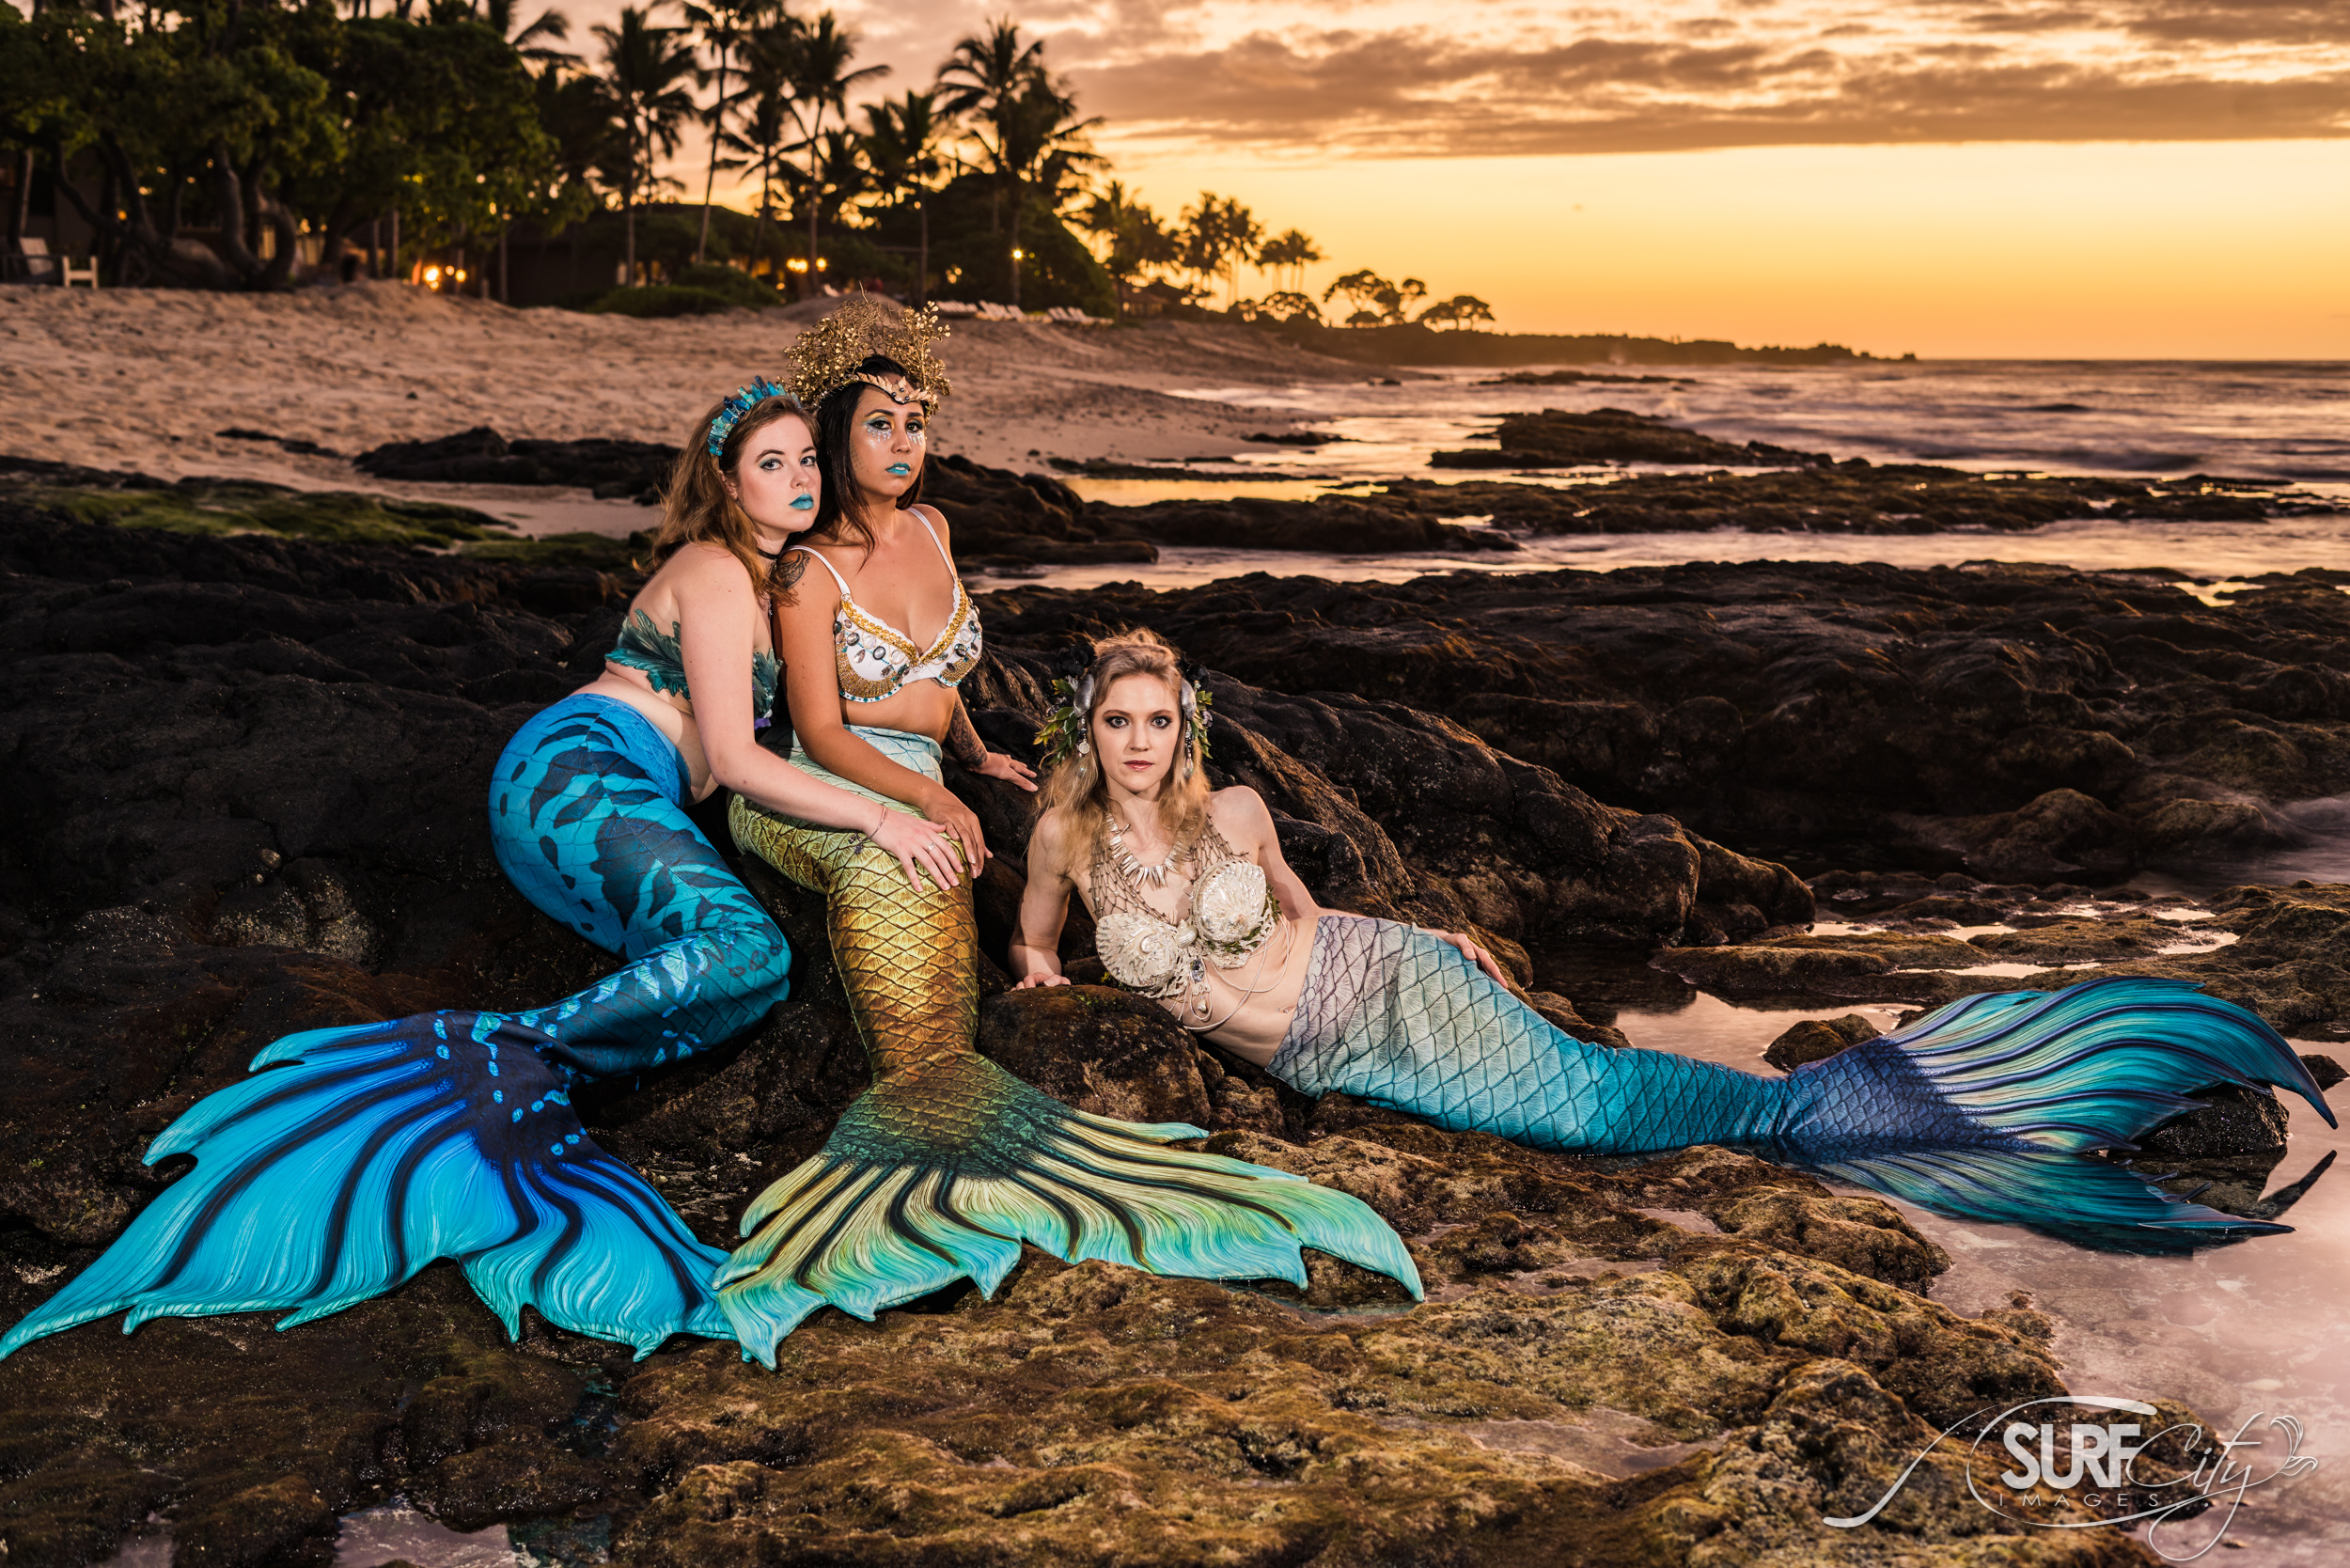 Dramatic mermaid photos